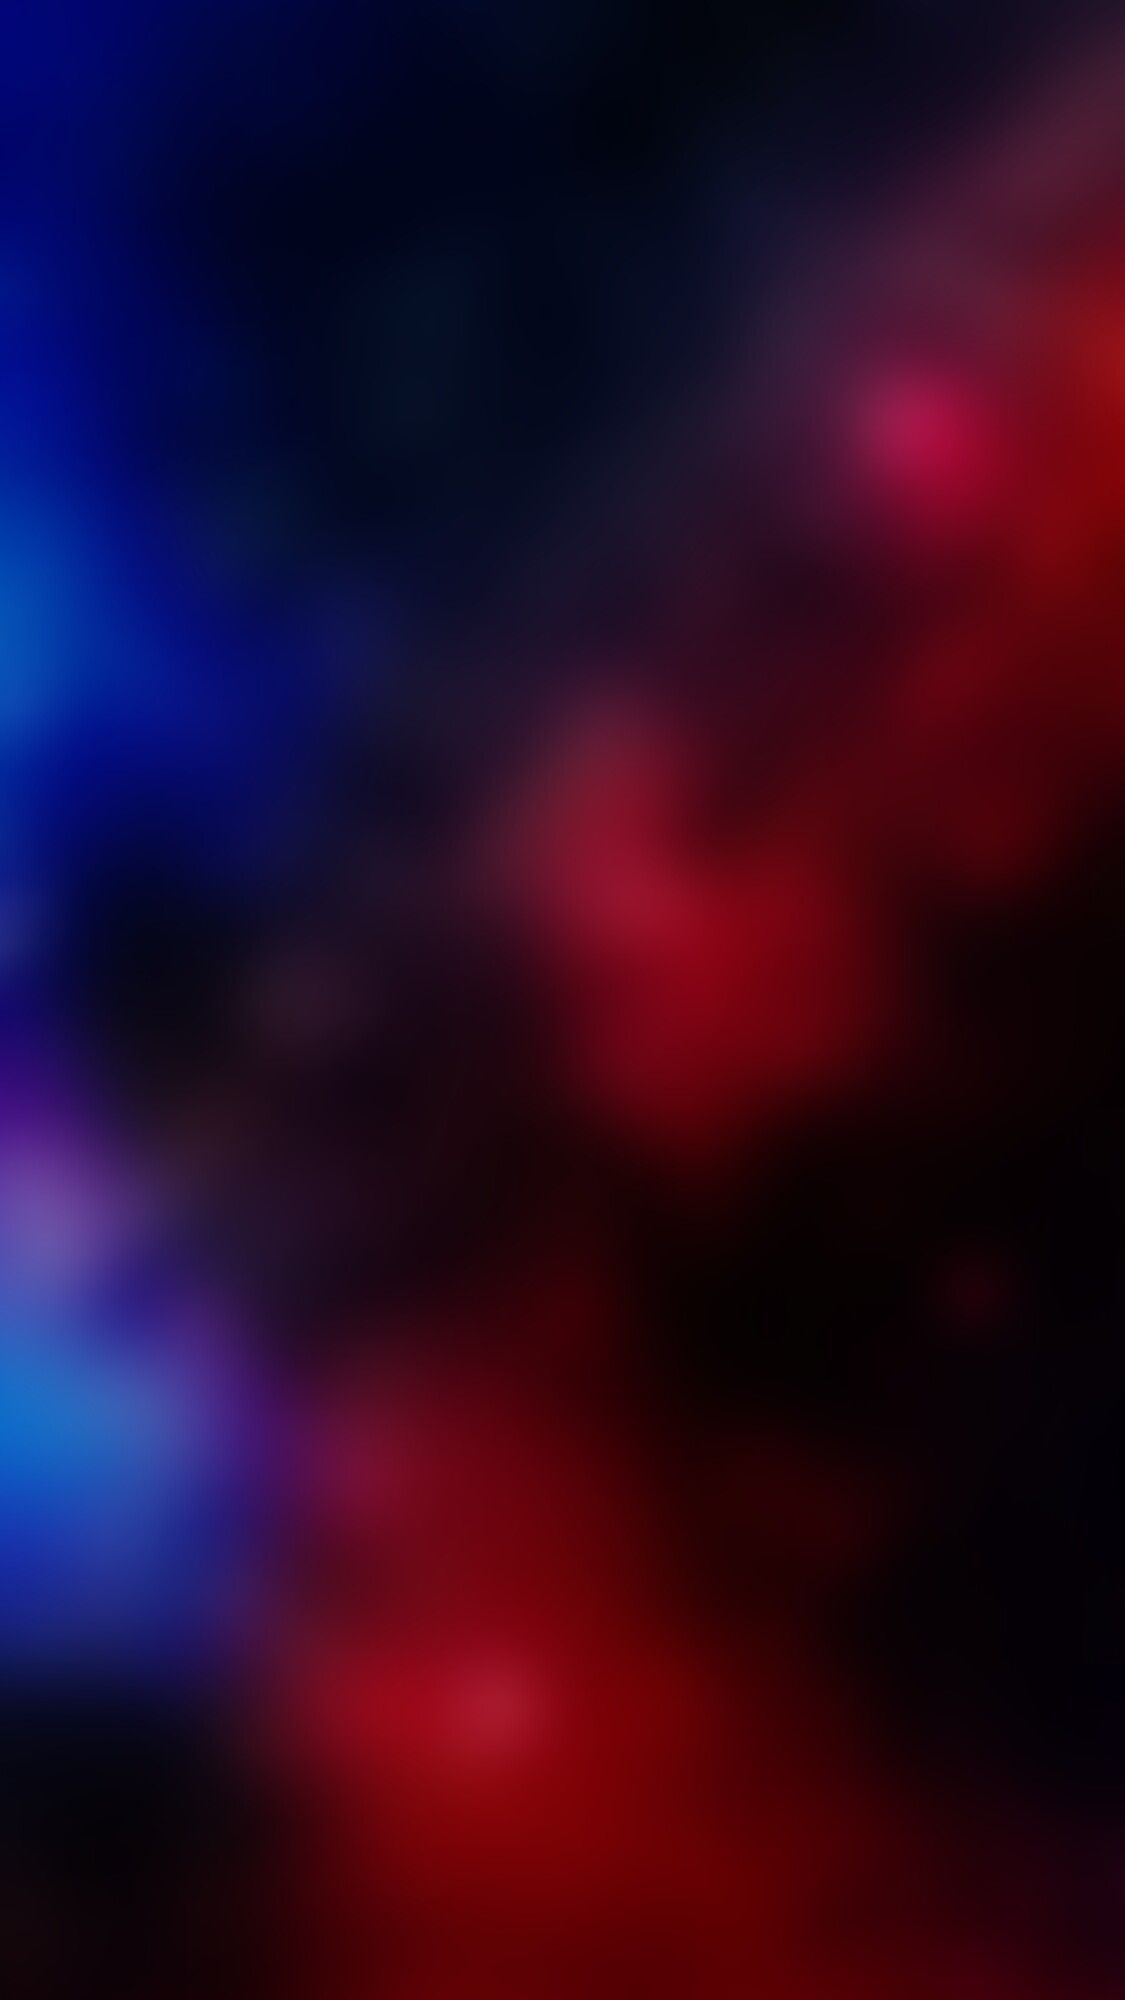 Pin By Iyan Sofyan On Abstract Amoled Liquid Gradient Samsung Wallpaper Xiaomi Wallpapers Red Wallpaper